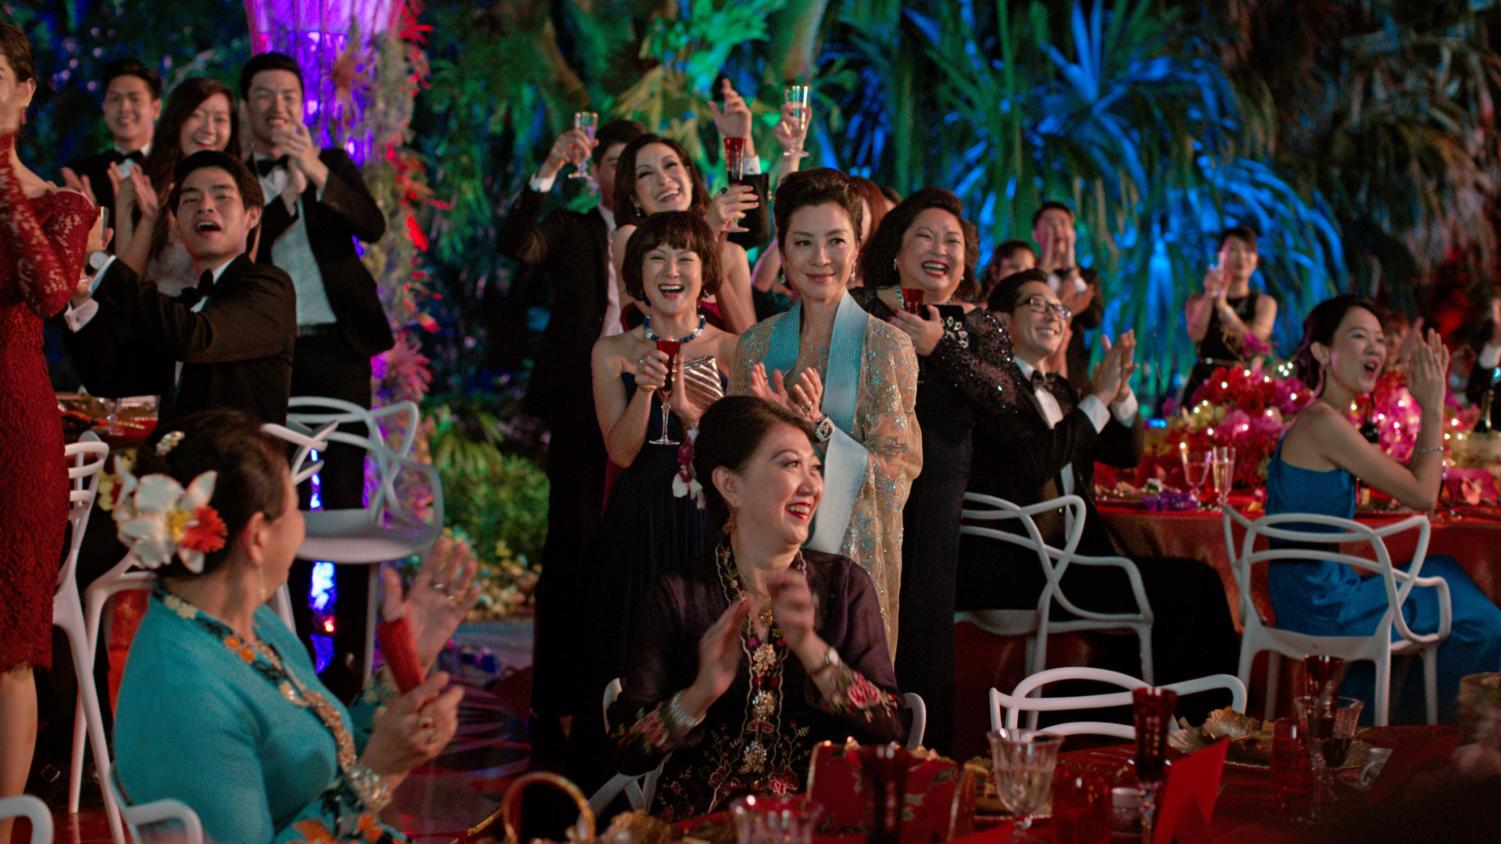 The all-Asian cast of Crazy Rich Asians (italicized) celebrates a record box office turnout after its premiere on Aug. 15.